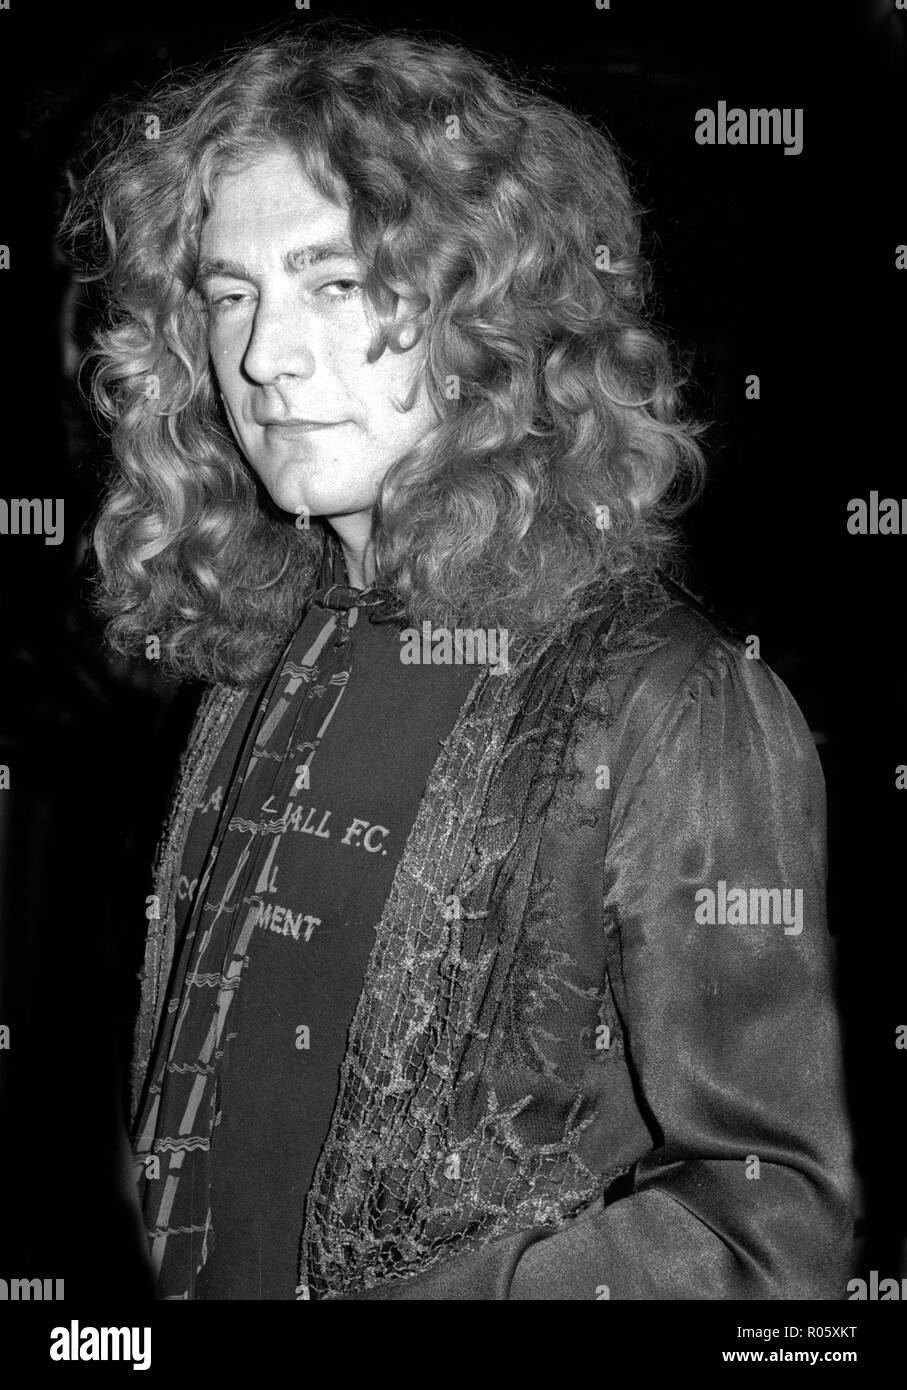 Robert Plant Black And White Stock Photos Amp Images Alamy